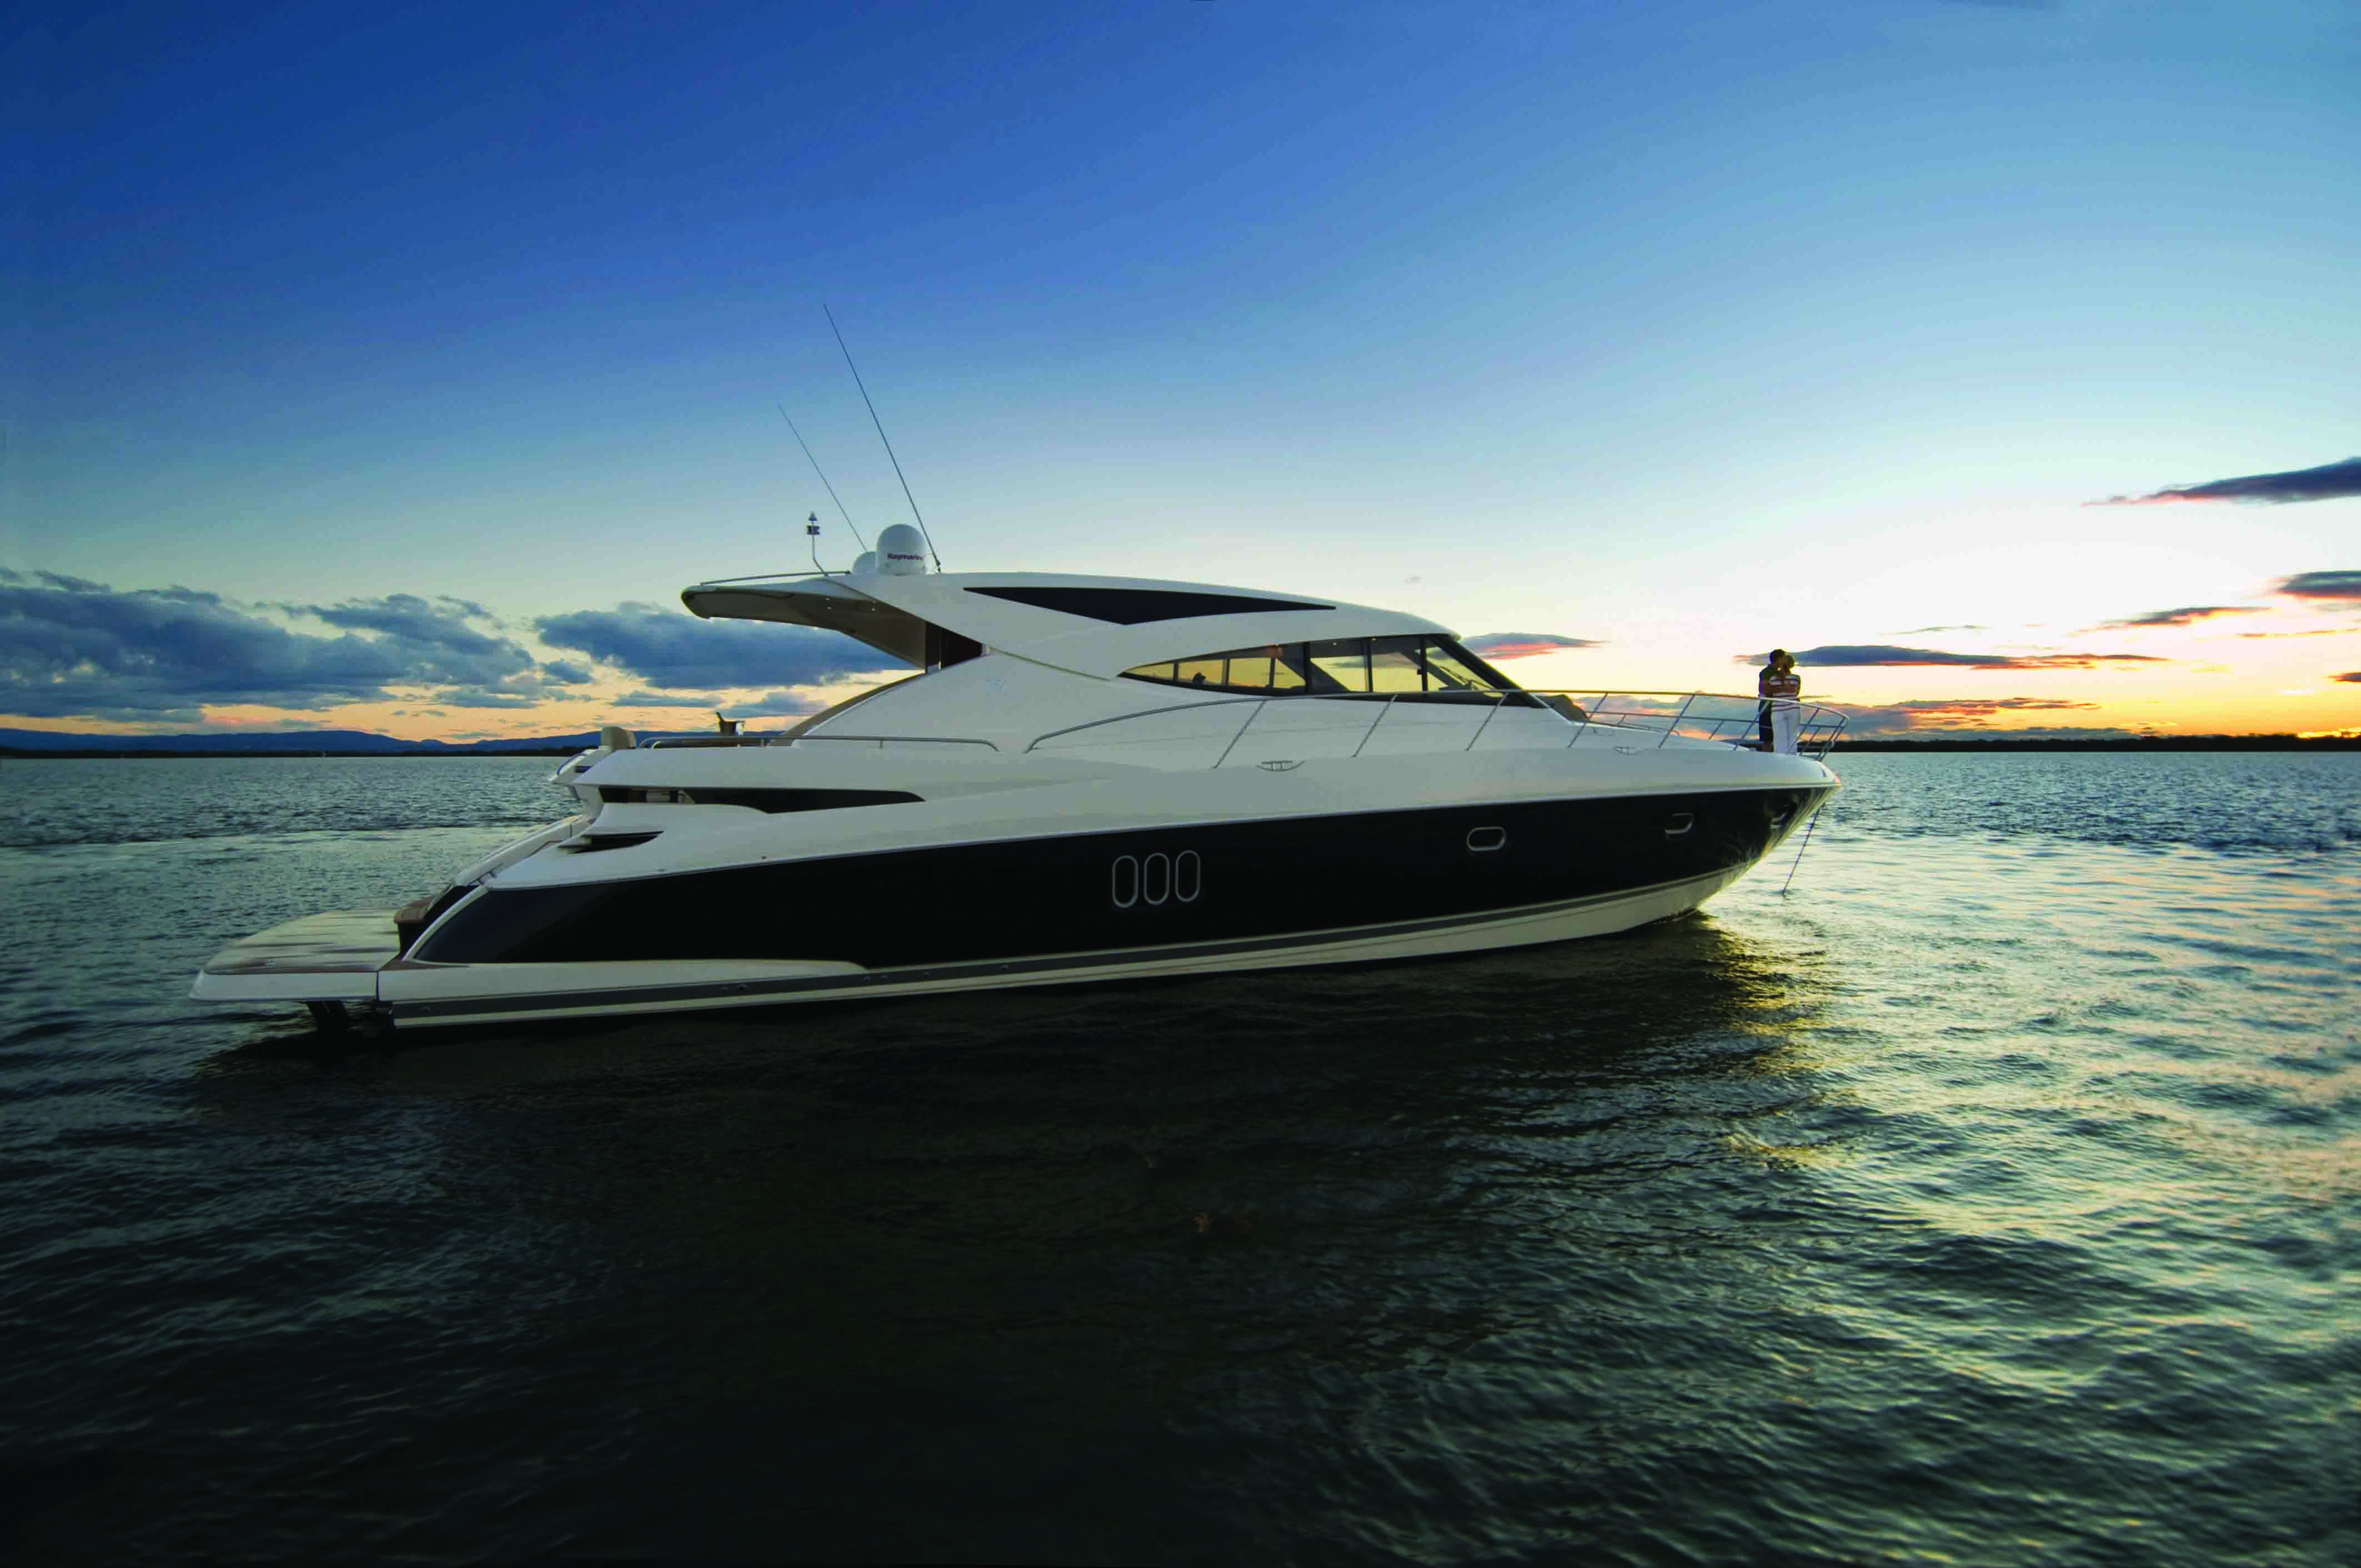 The striking European design makes the 5800 Sport Yacht with IPS a popular ...